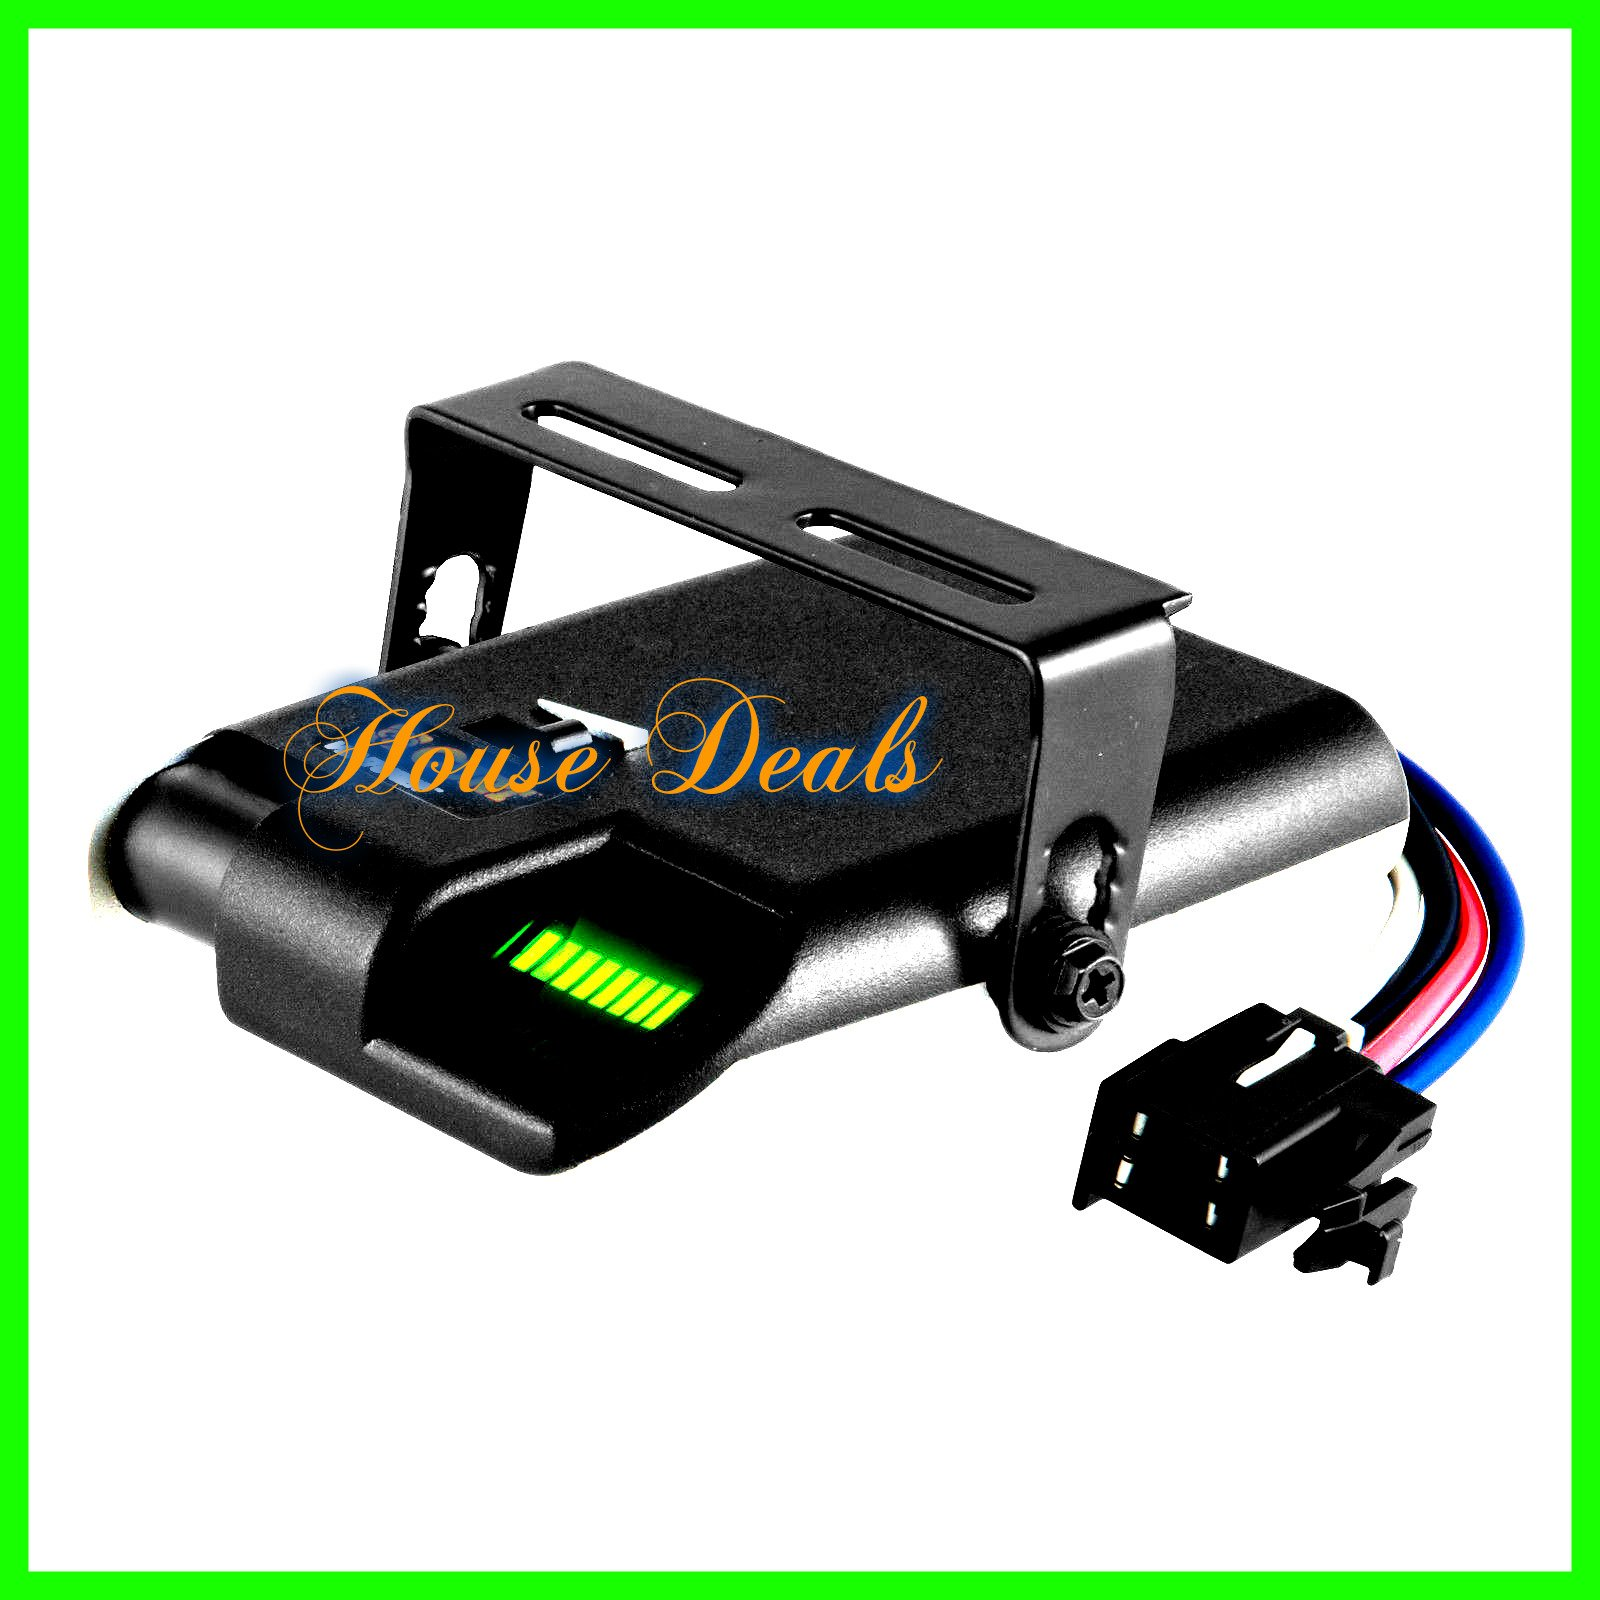 Electric Brake Power Sensitivity Controller Unit With Time Based Activation - House Deals